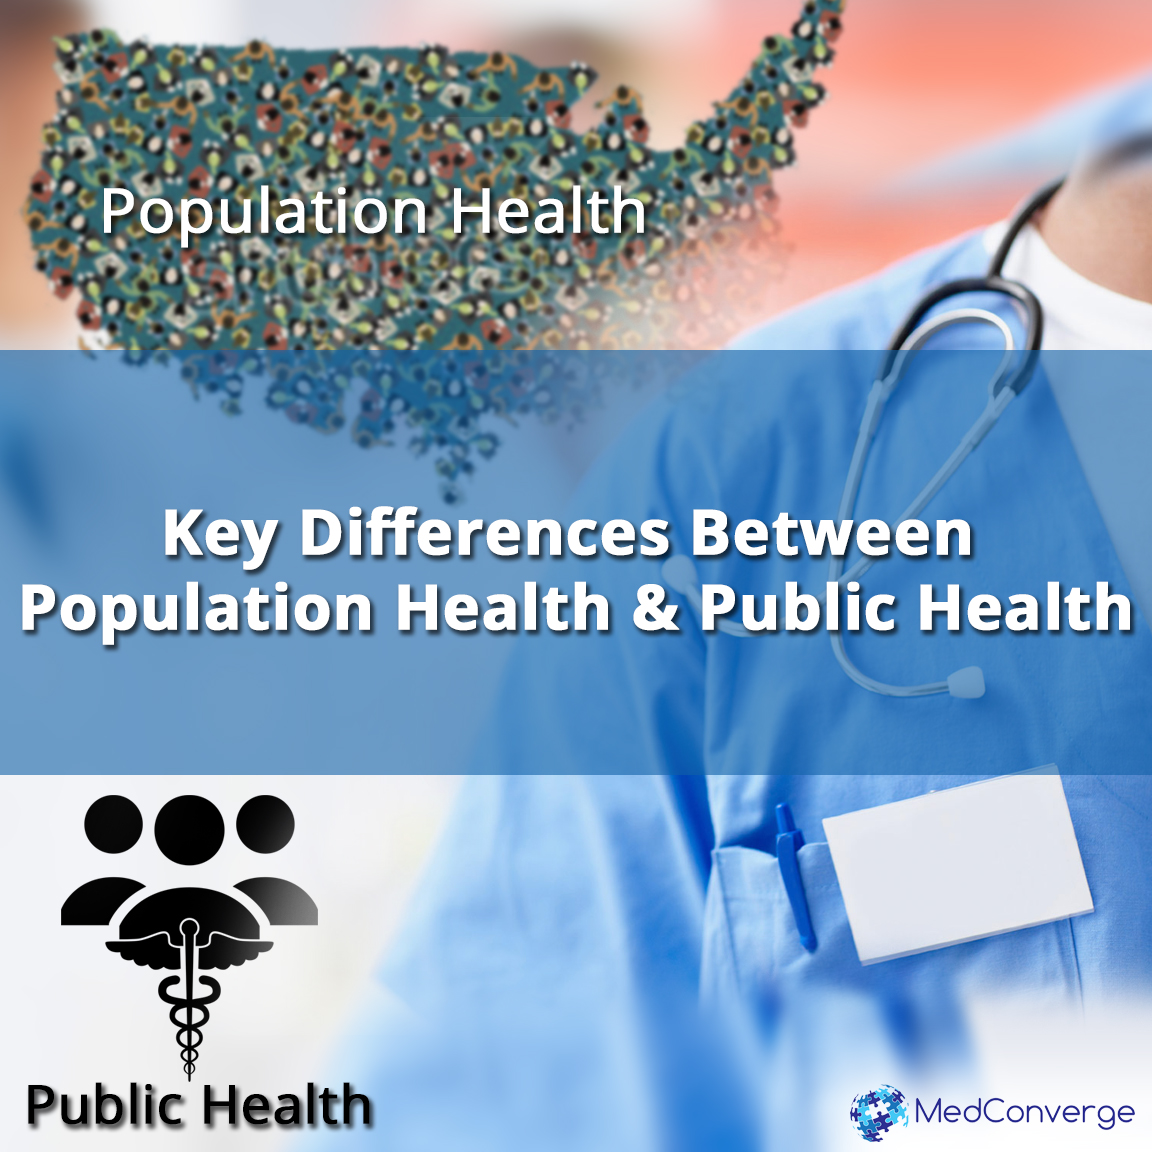 Population Health and Public Health